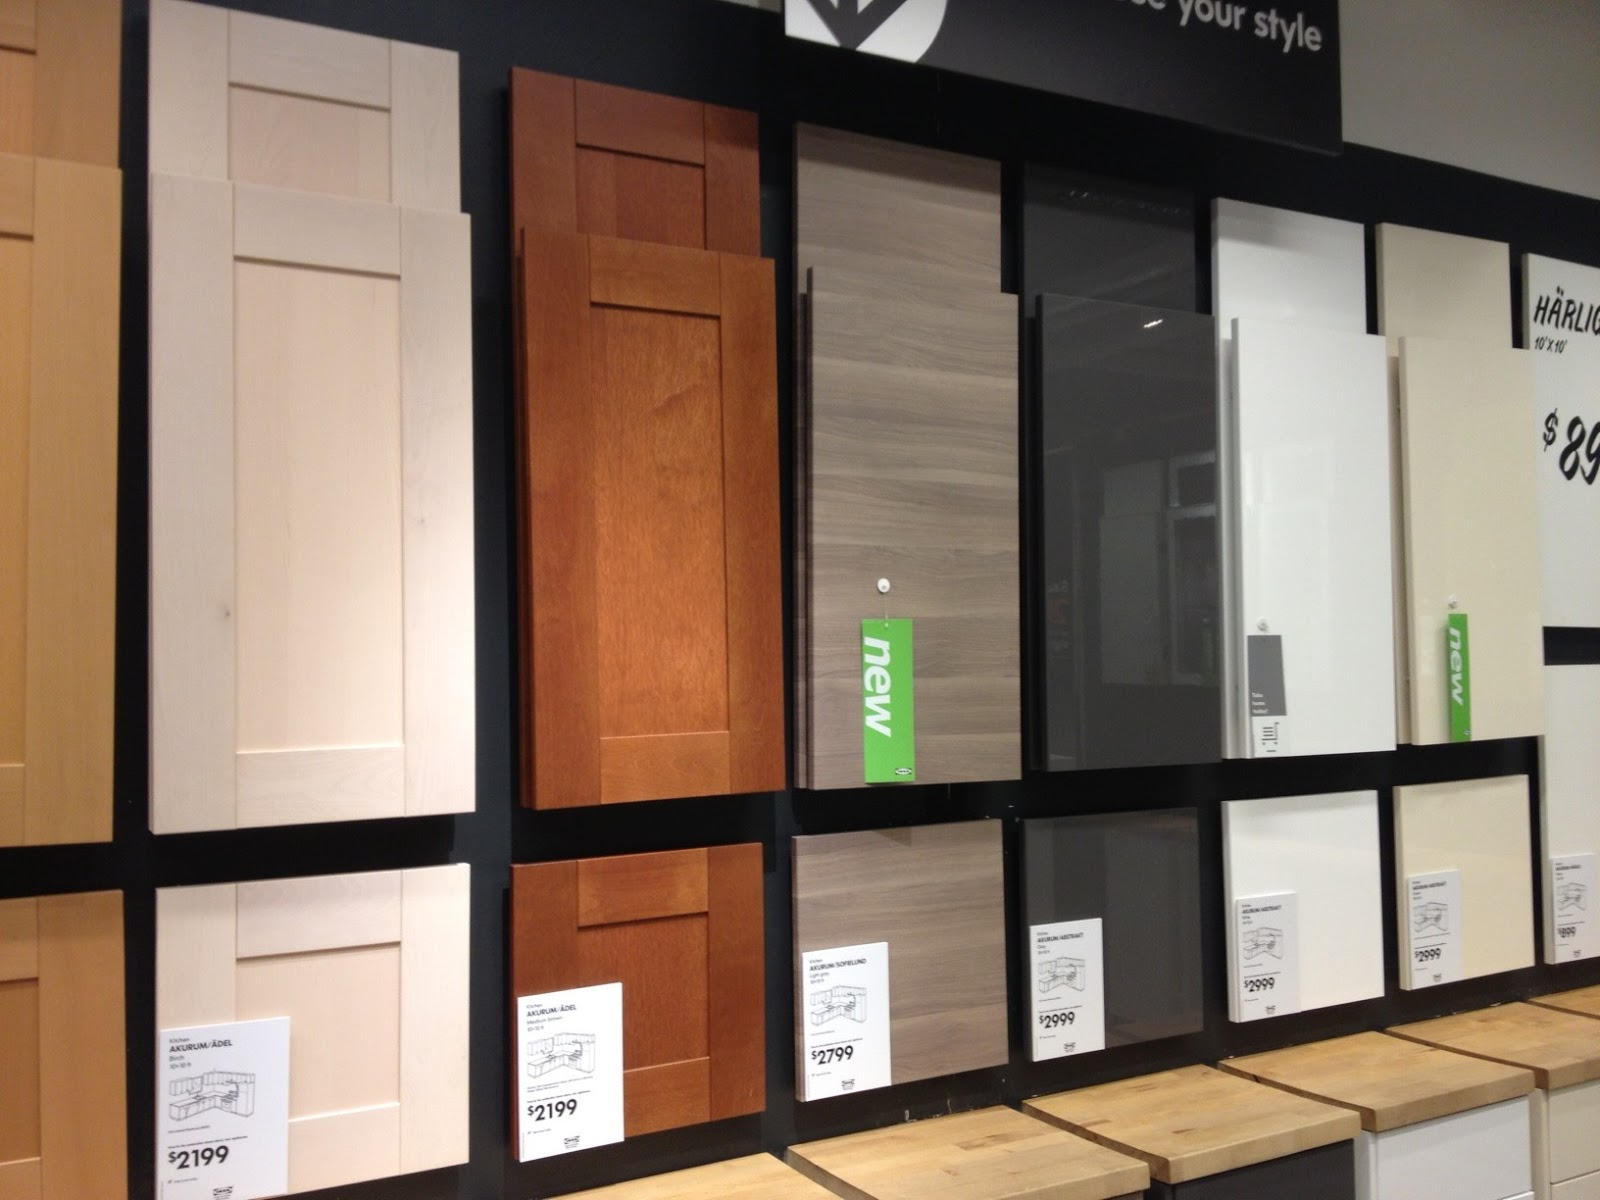 Life and architecture ikea kitchen cabinets the 2013 - Ikea cabinet doors on existing cabinets ...